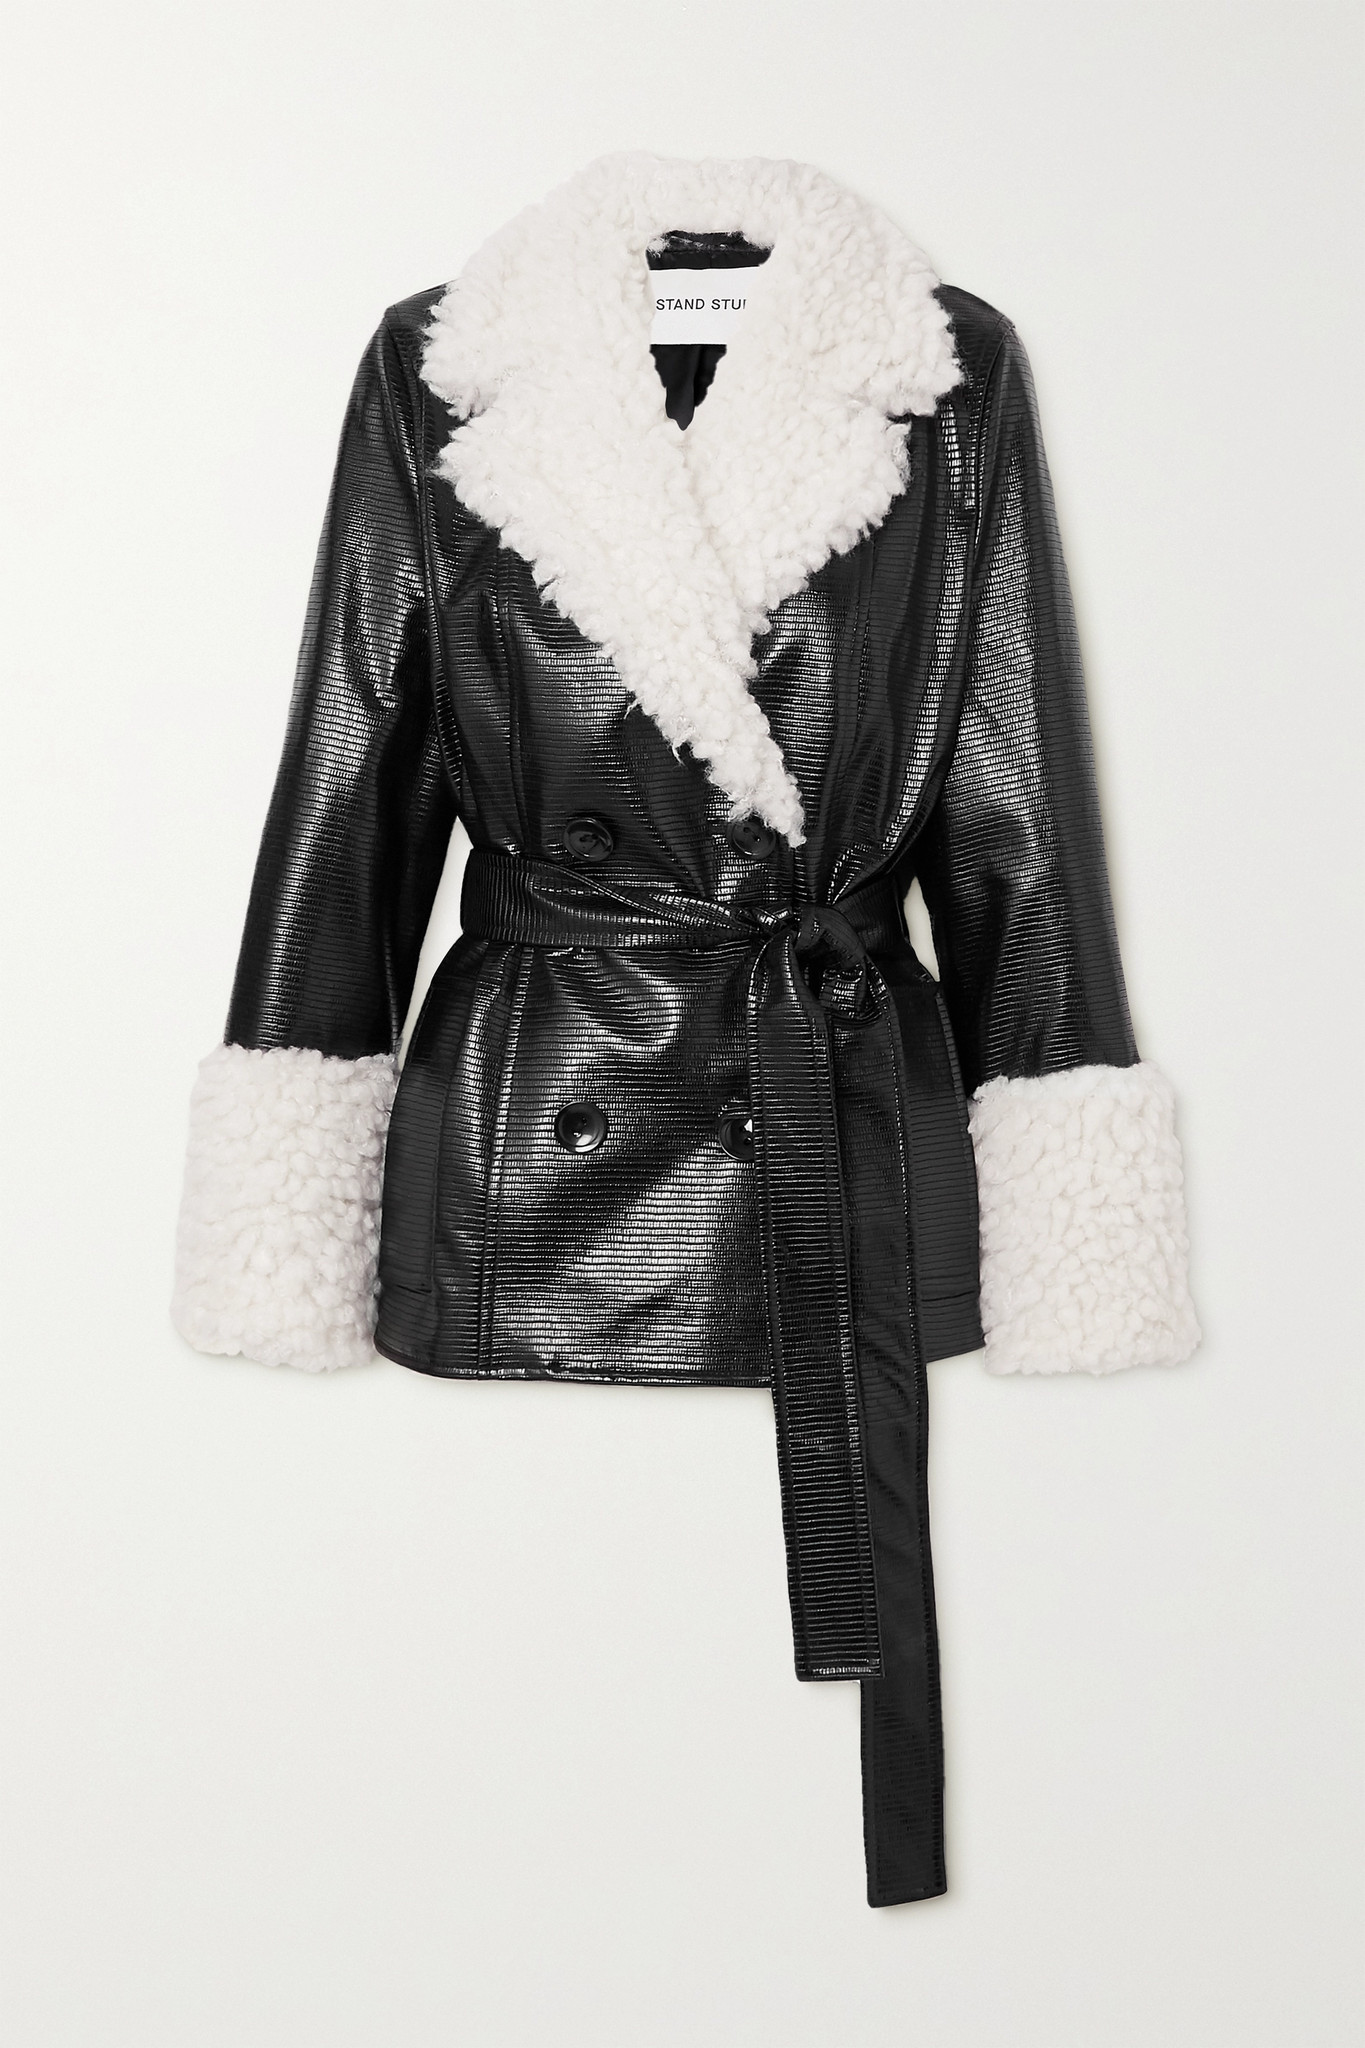 STAND STUDIO - Harmony Belted Faux Shearling-trimmed Faux Textured Patent-leather Coat - Black - FR4